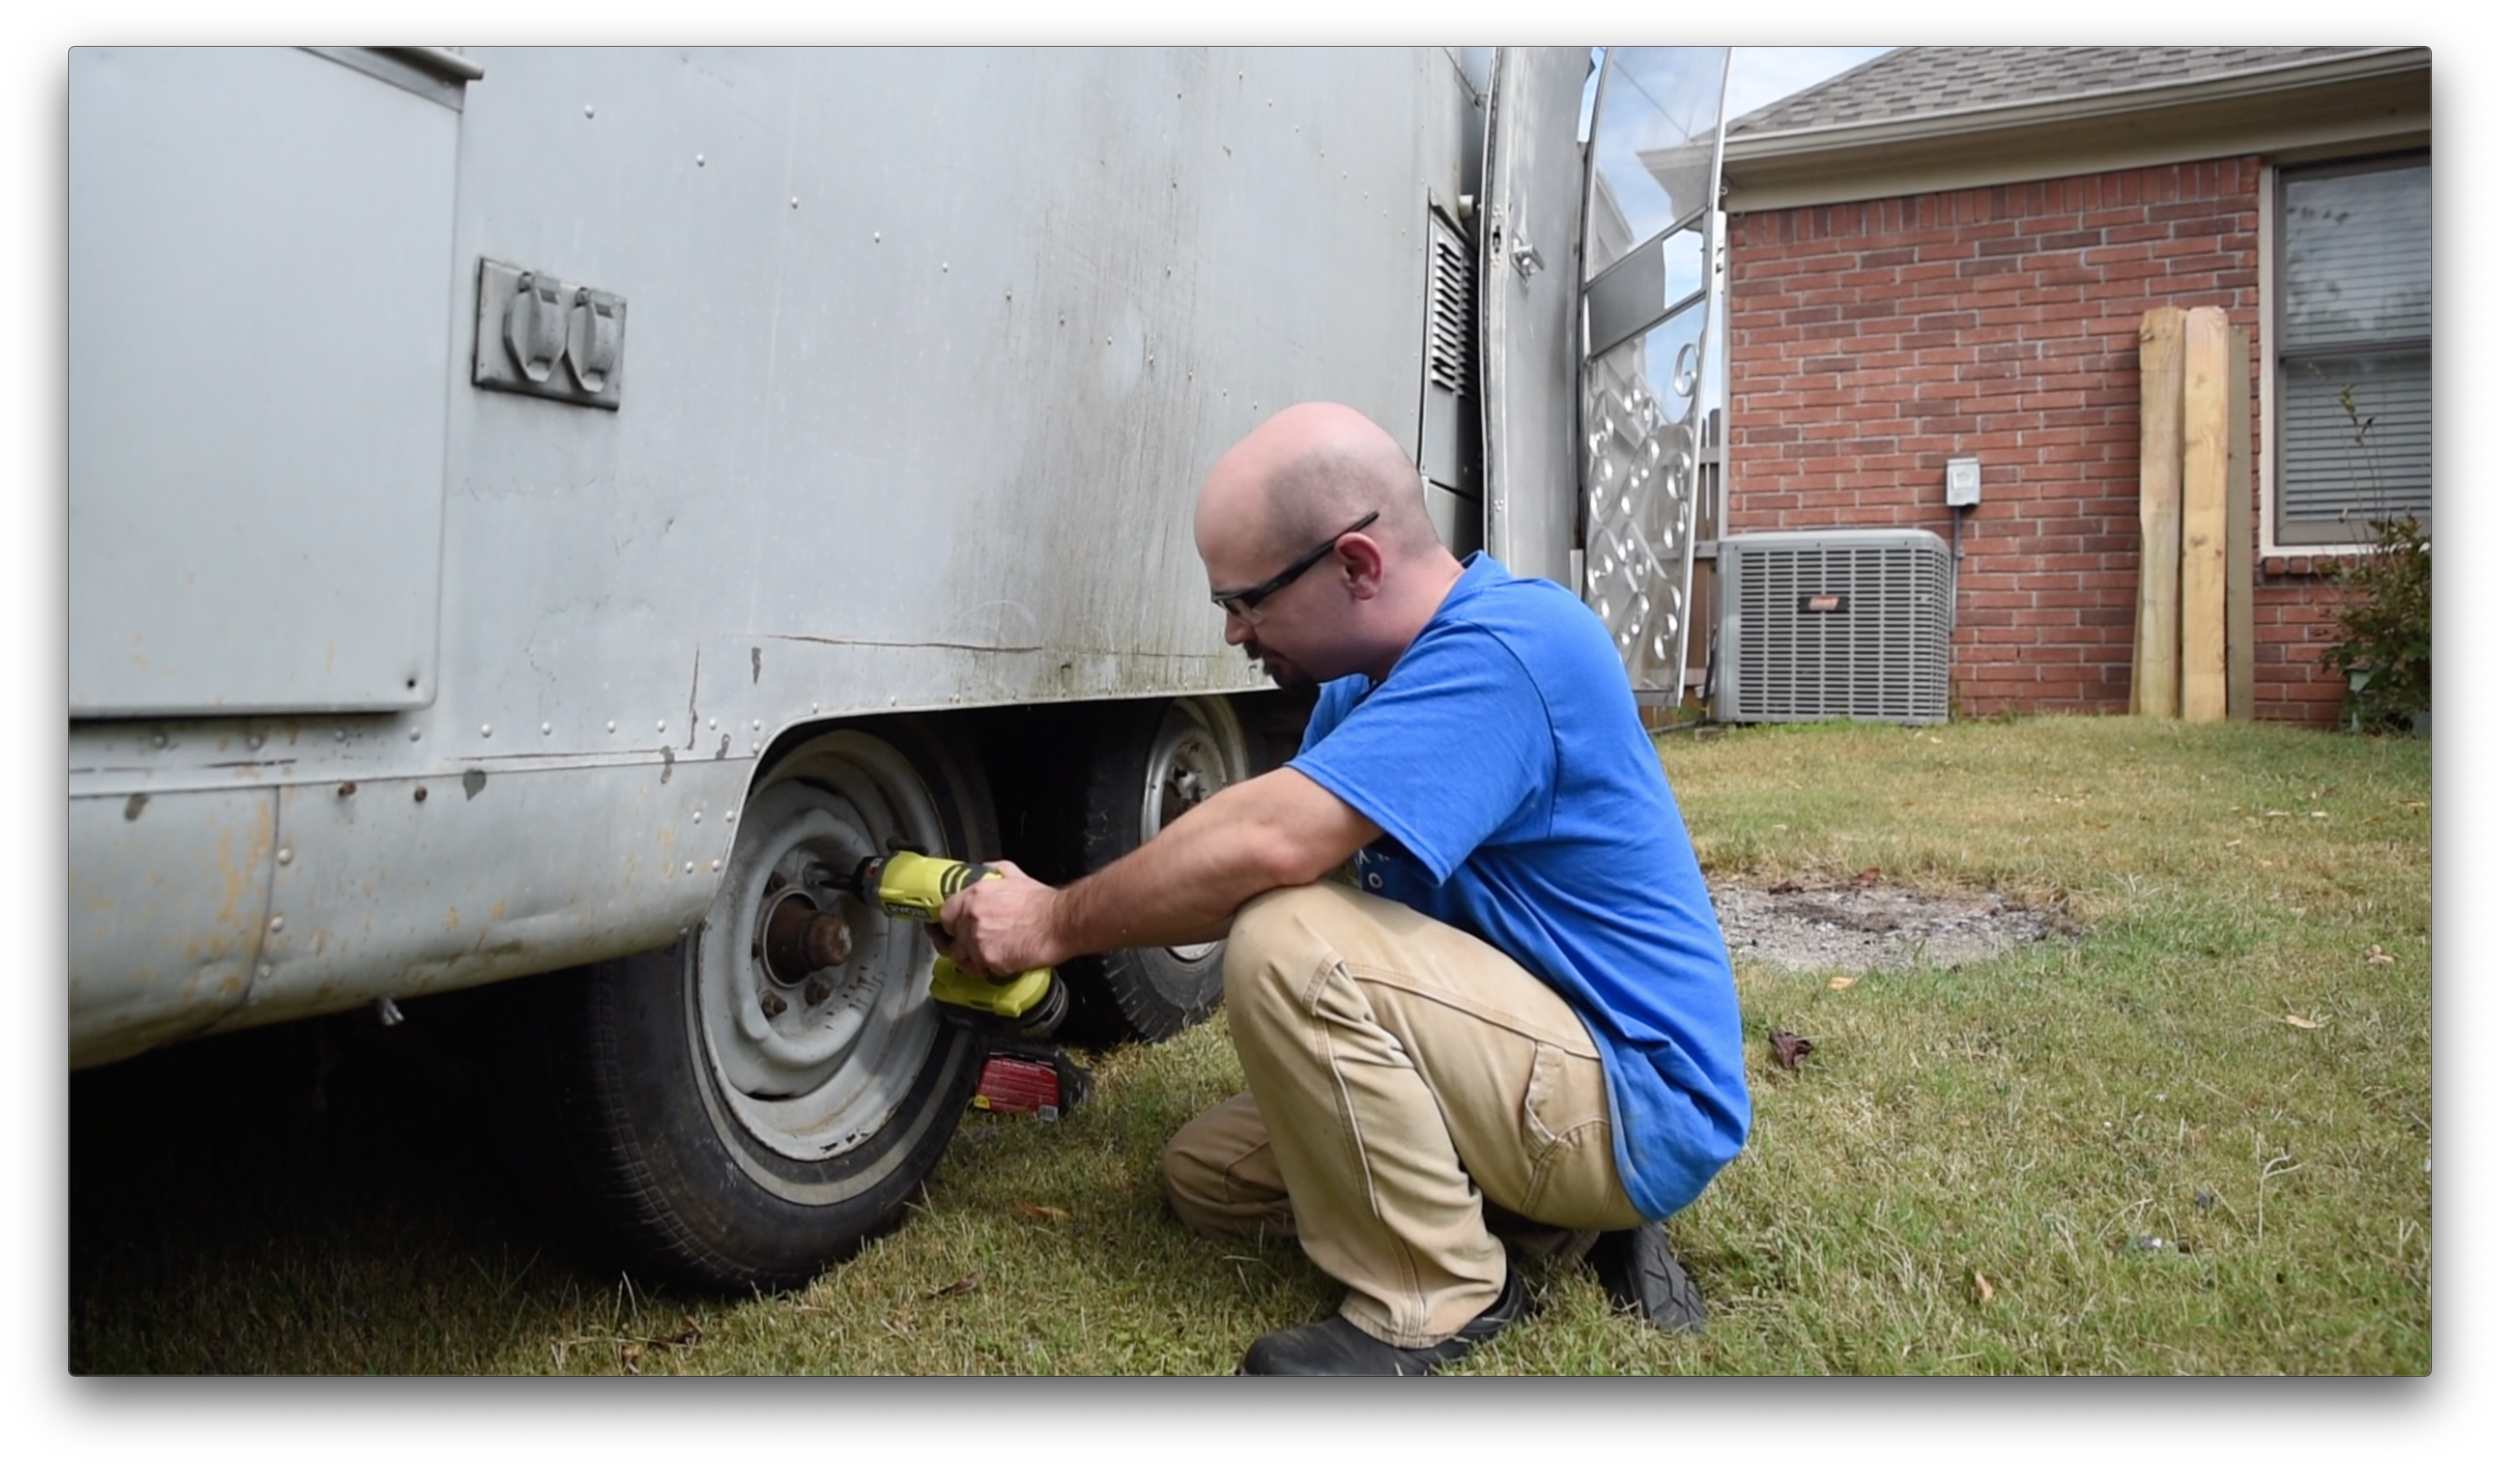 Removing the Avion Vintage Camper tires with the Ryobi Impact Wrench